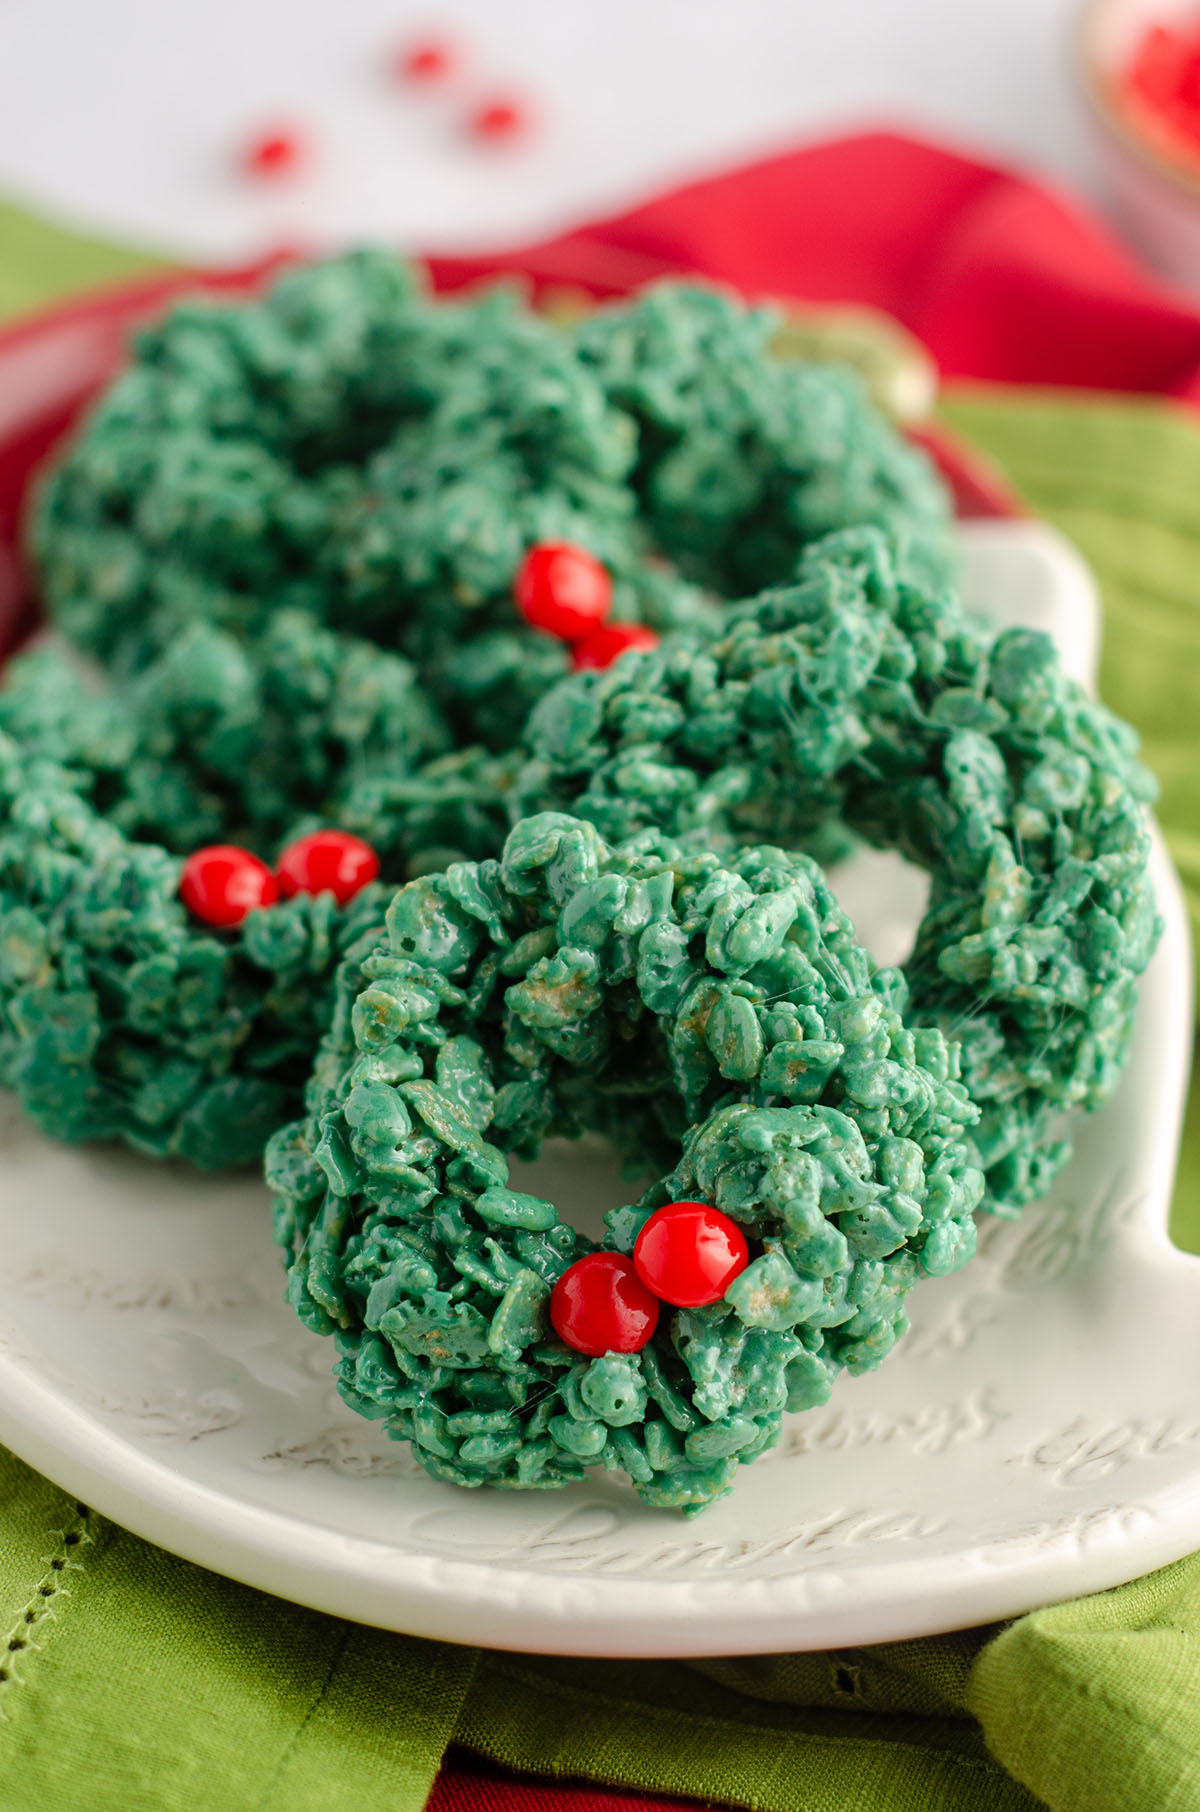 rice krispies wreaths sitting on a plate